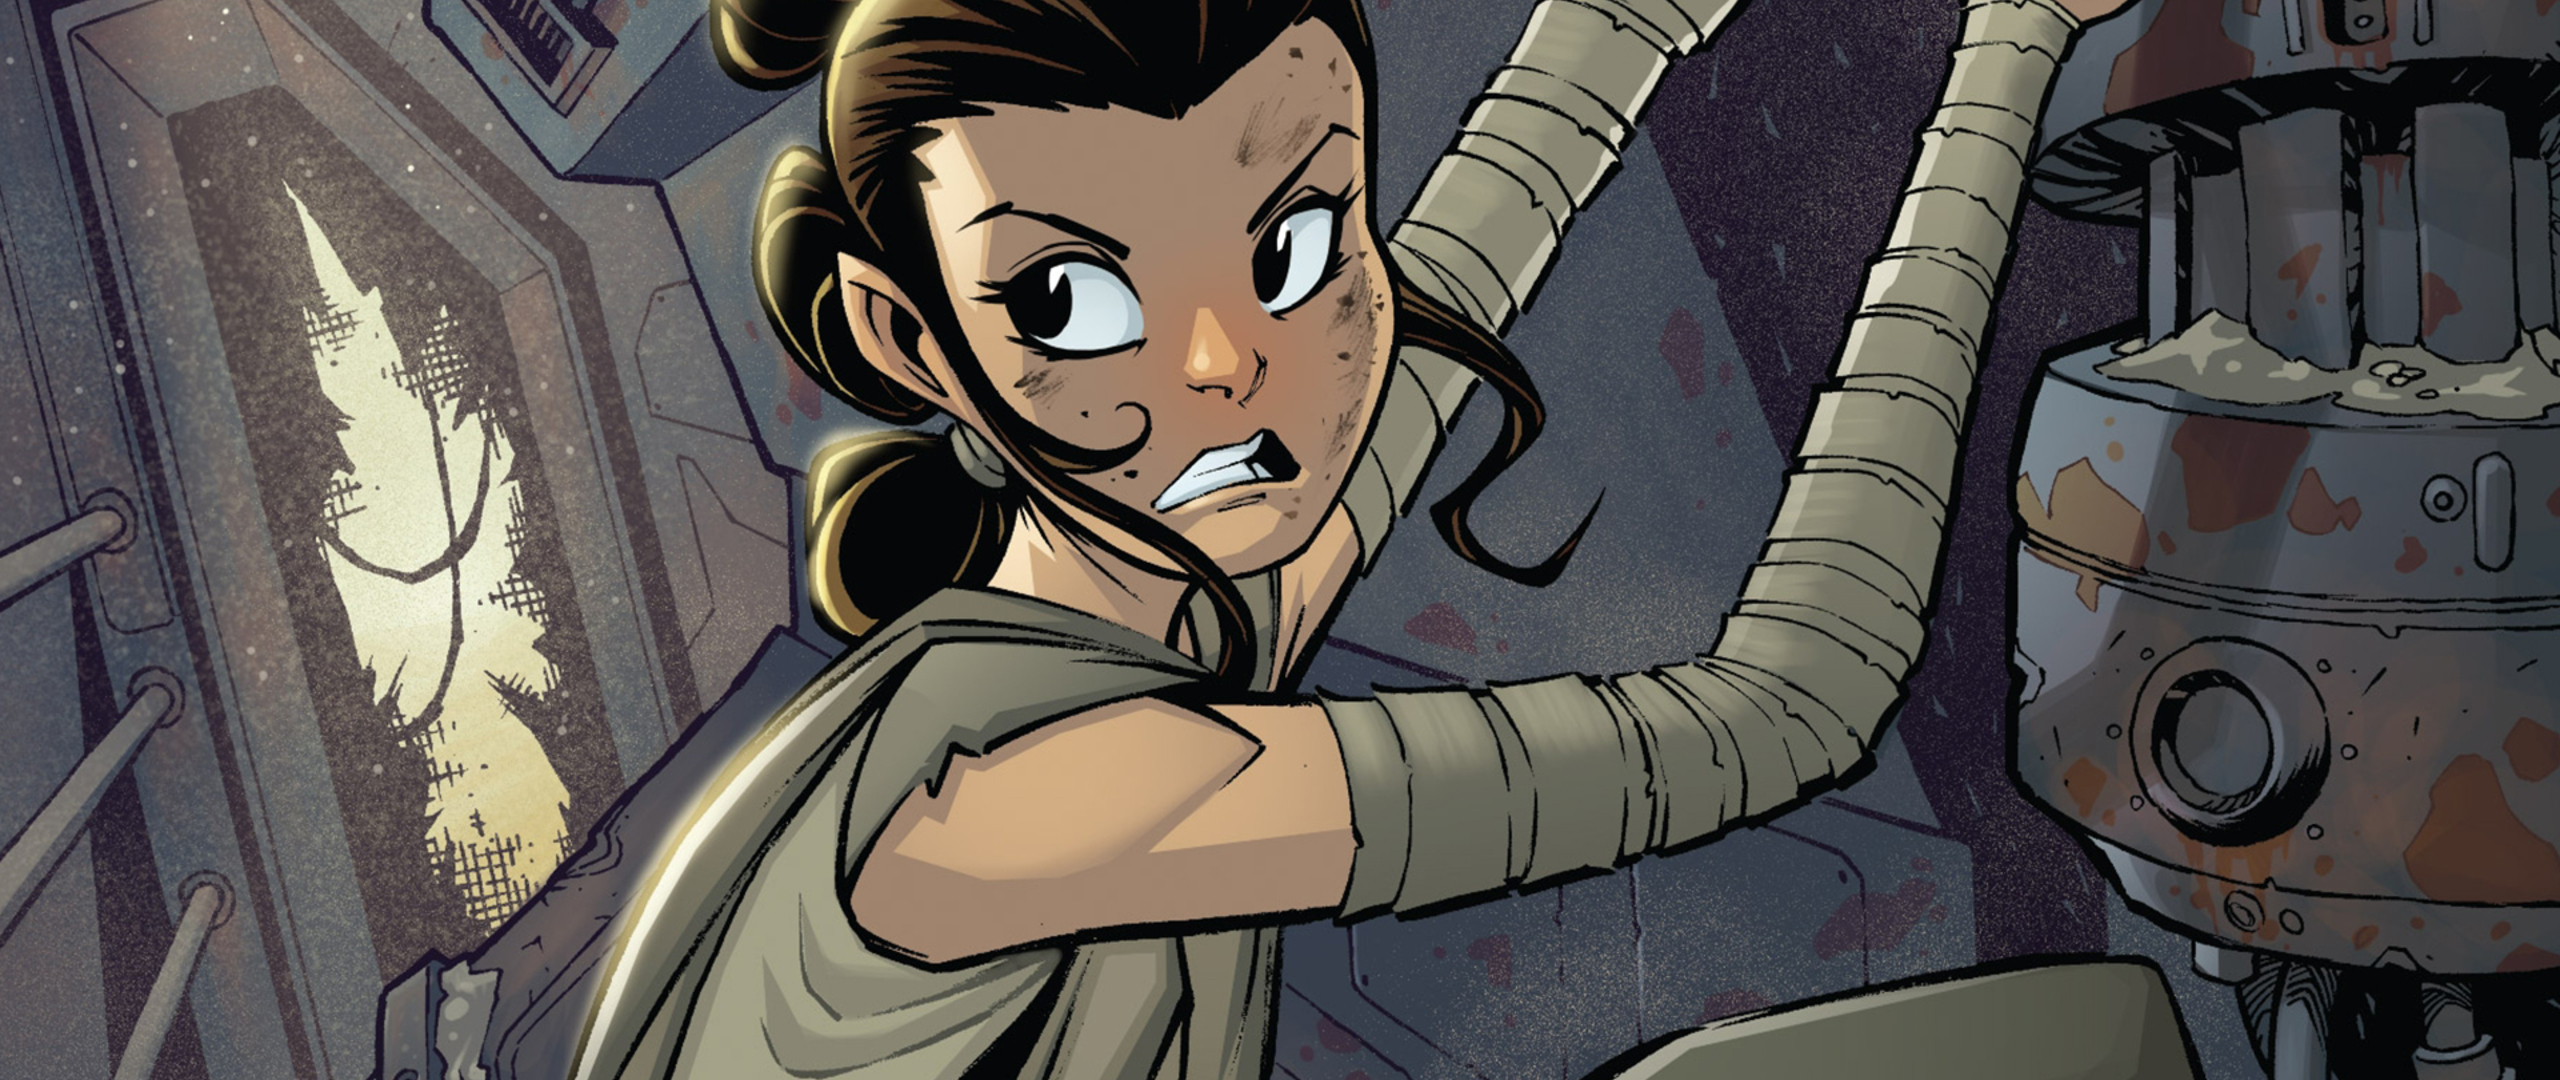 rey-star-wars-artwork-hd-be.jpg